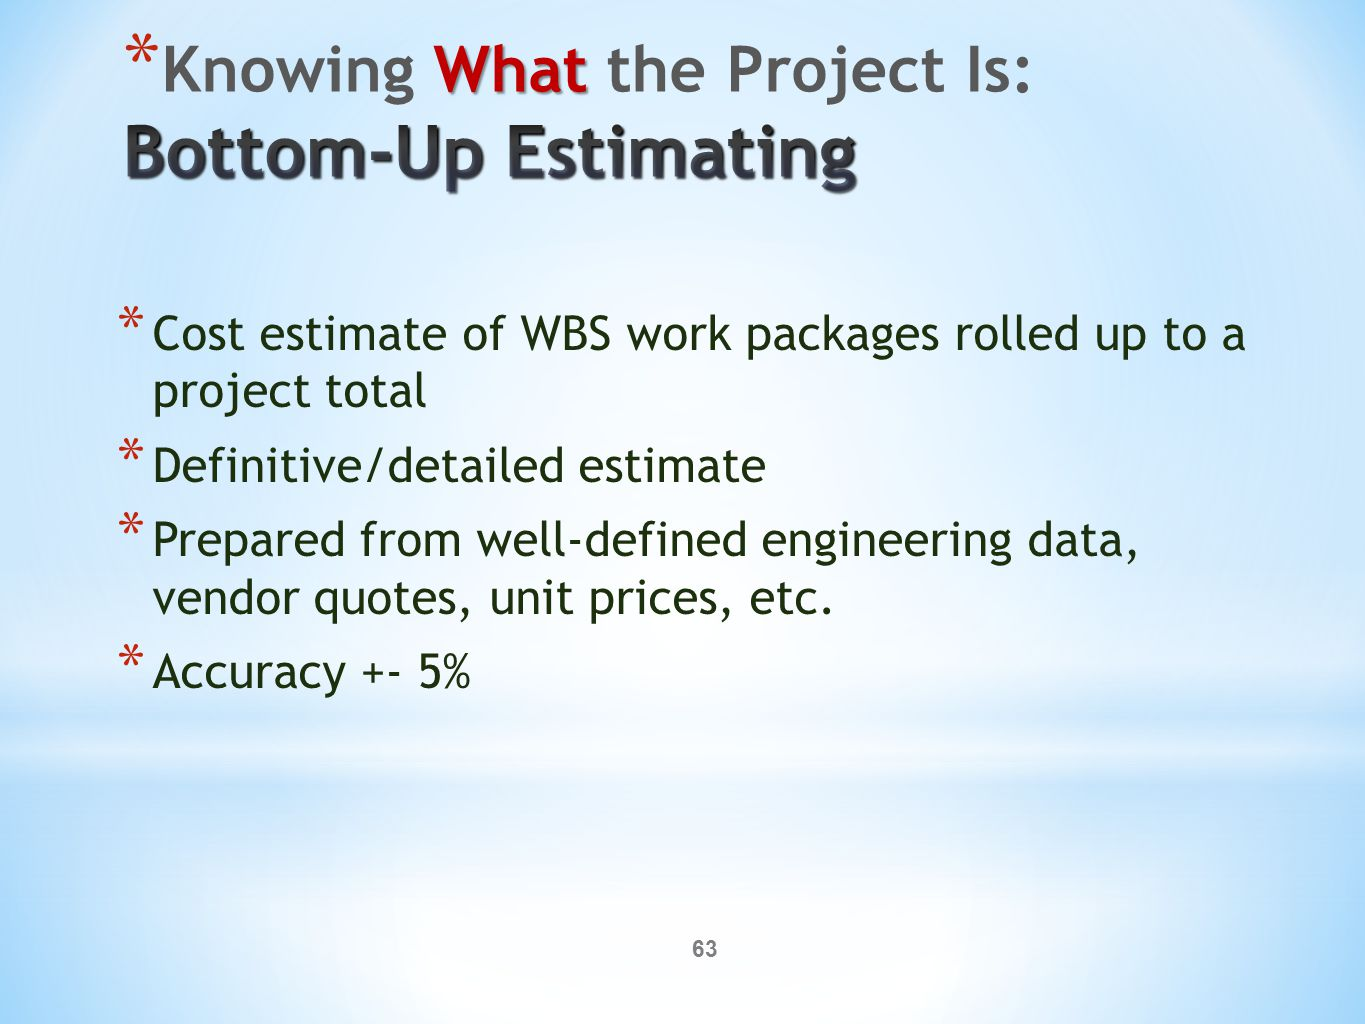 63 * Cost estimate of WBS work packages rolled up to a project total * Definitive/detailed estimate * Prepared from well-defined engineering data, vendor quotes, unit prices, etc.